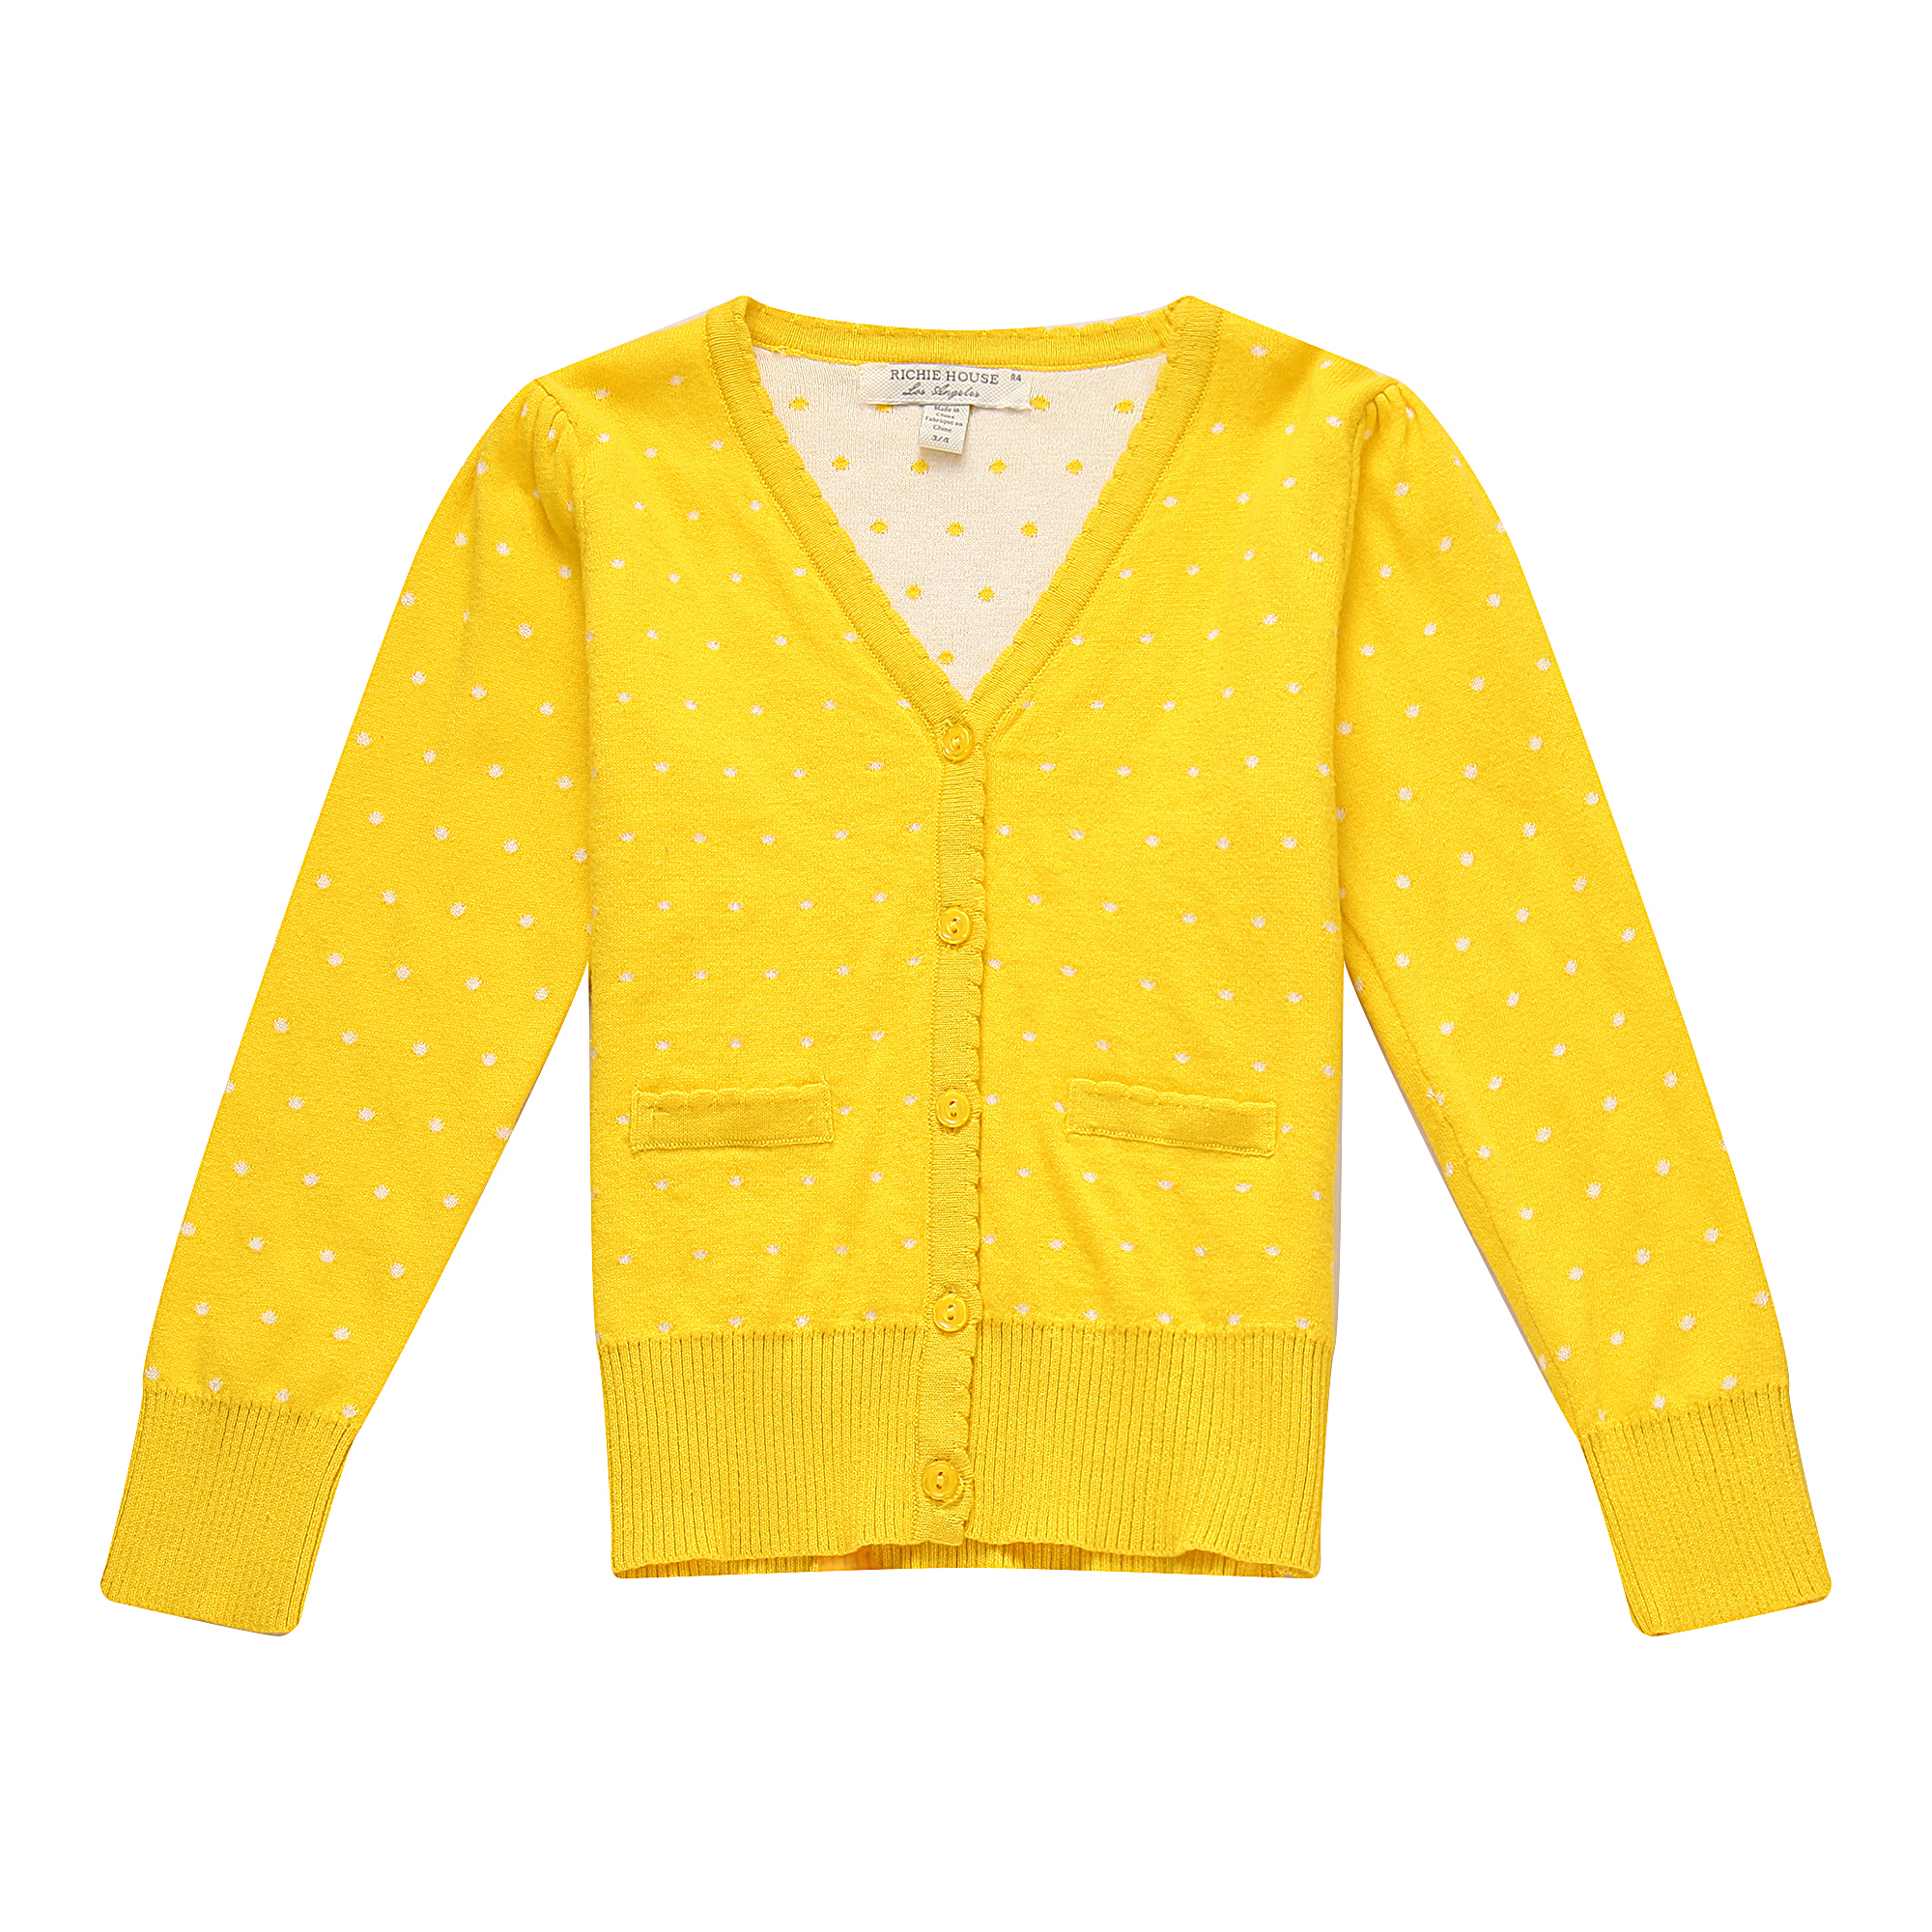 Richie House Girls' Cardigan Sweater with Matching Buttons RH0842